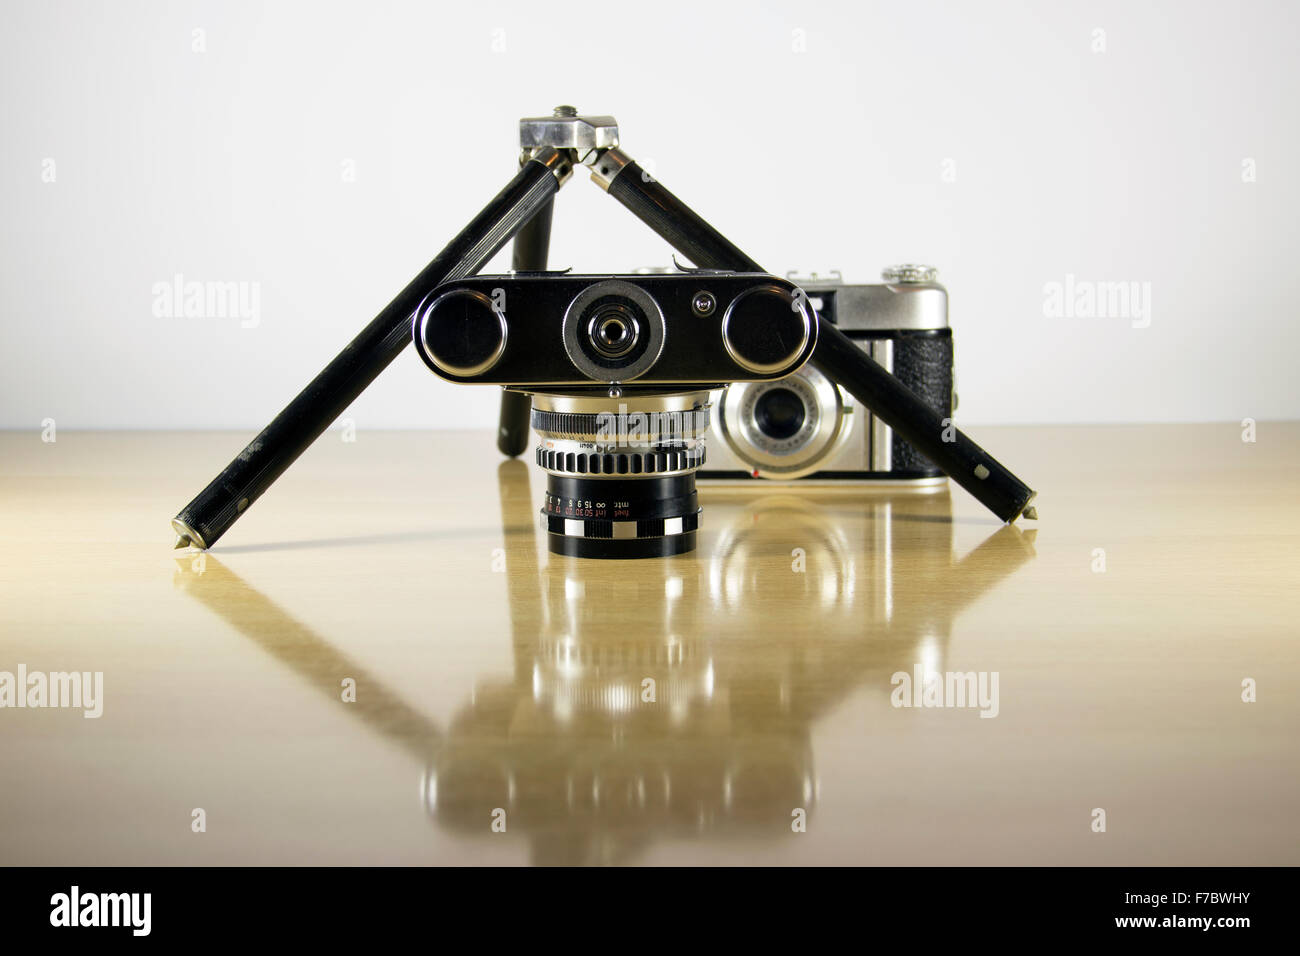 Store Banne 5x4 Old Camera On Wooden Tripod Stock Photos And Old Camera On